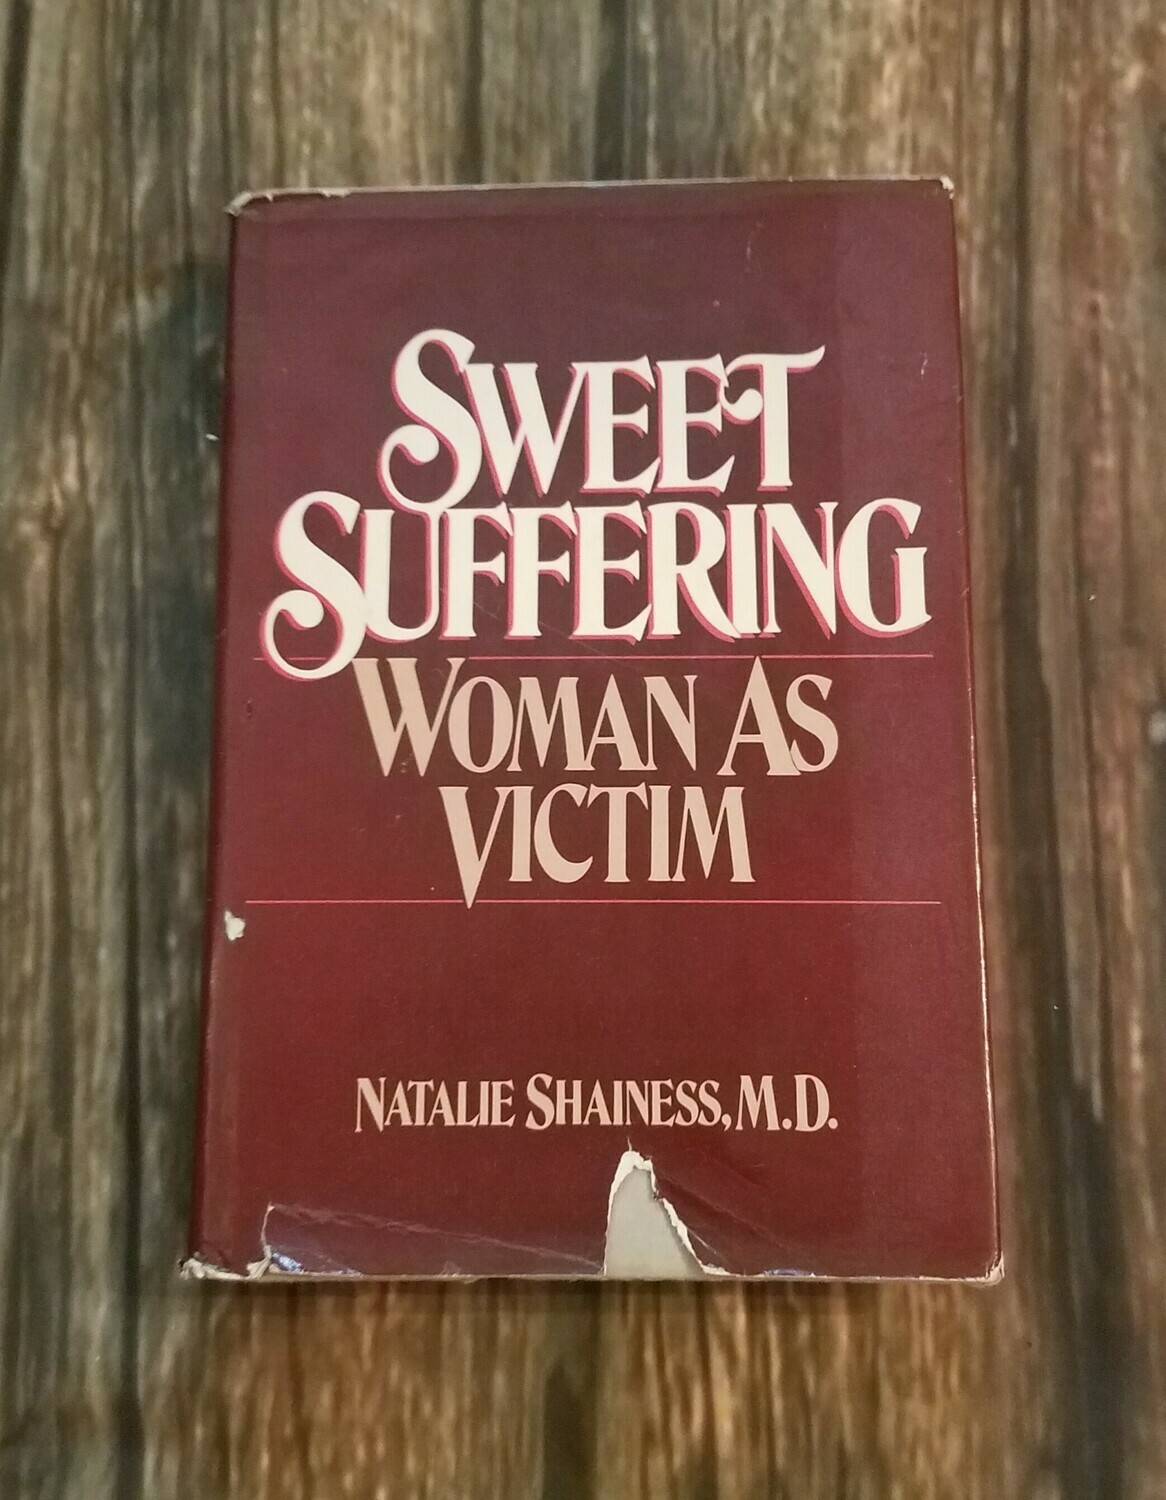 Sweet Suffering: Woman As Victim by Natalie Shainess, M.D.